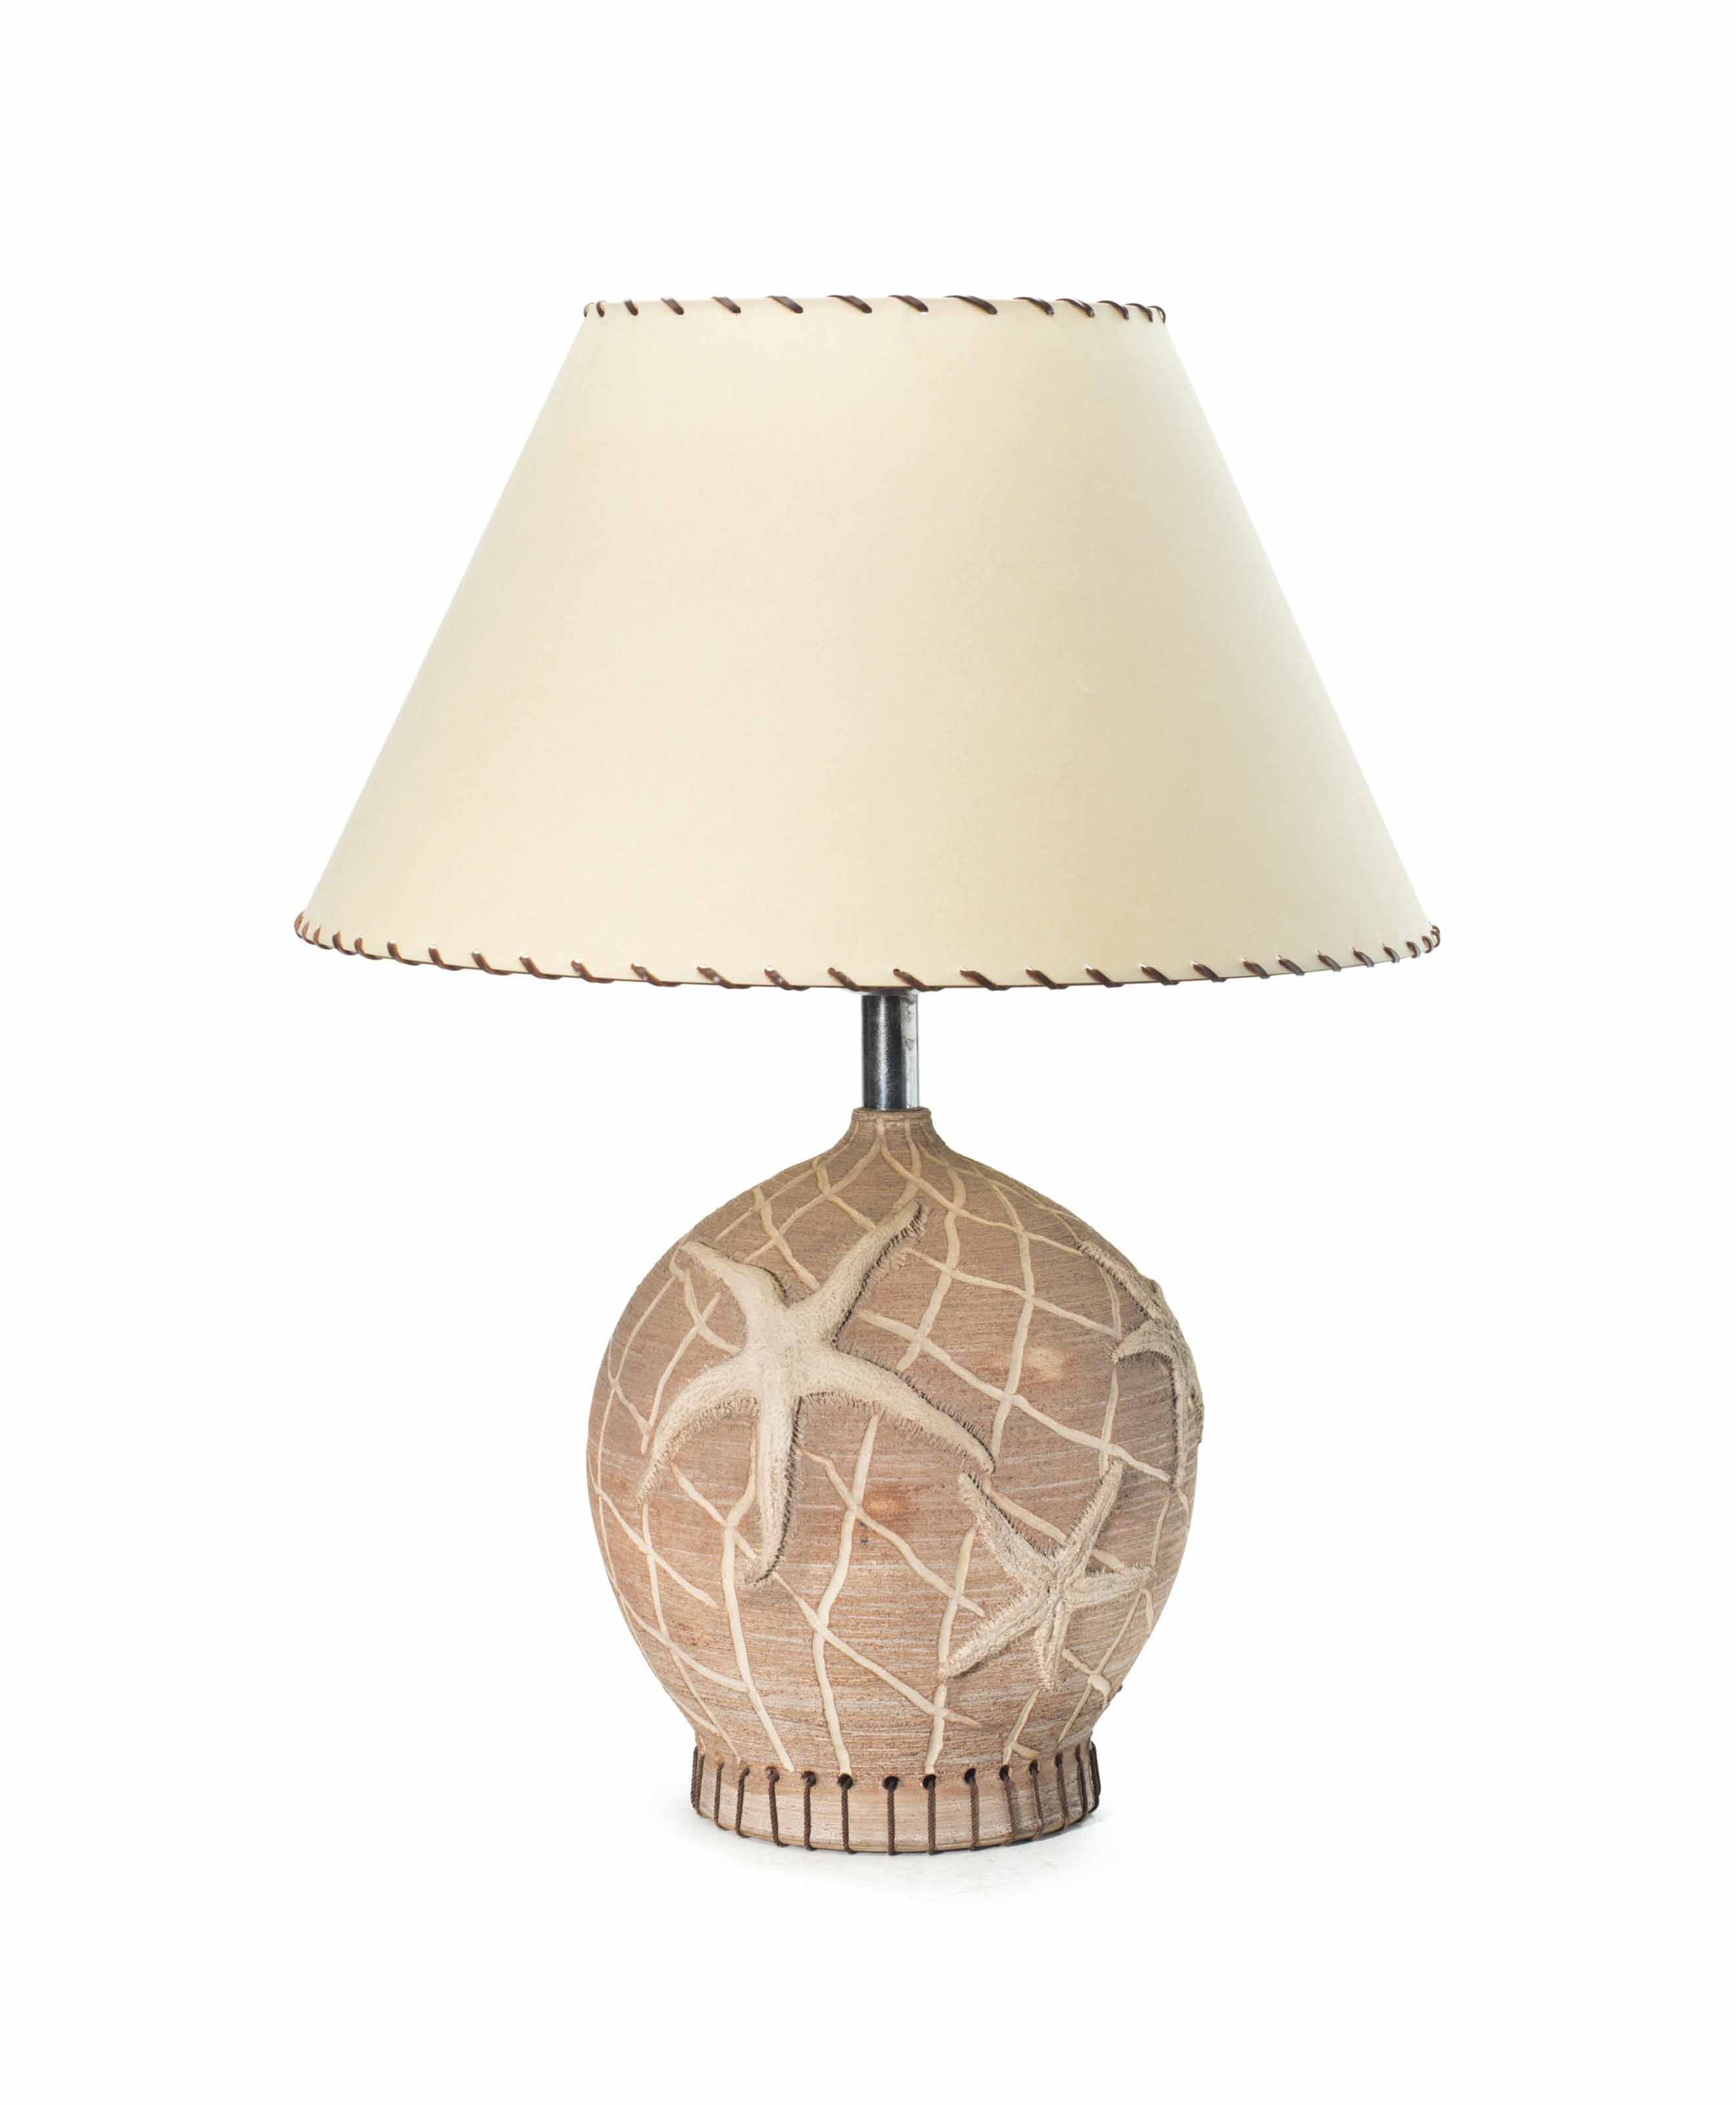 A FRENCH CERAMIC TABLE LAMP